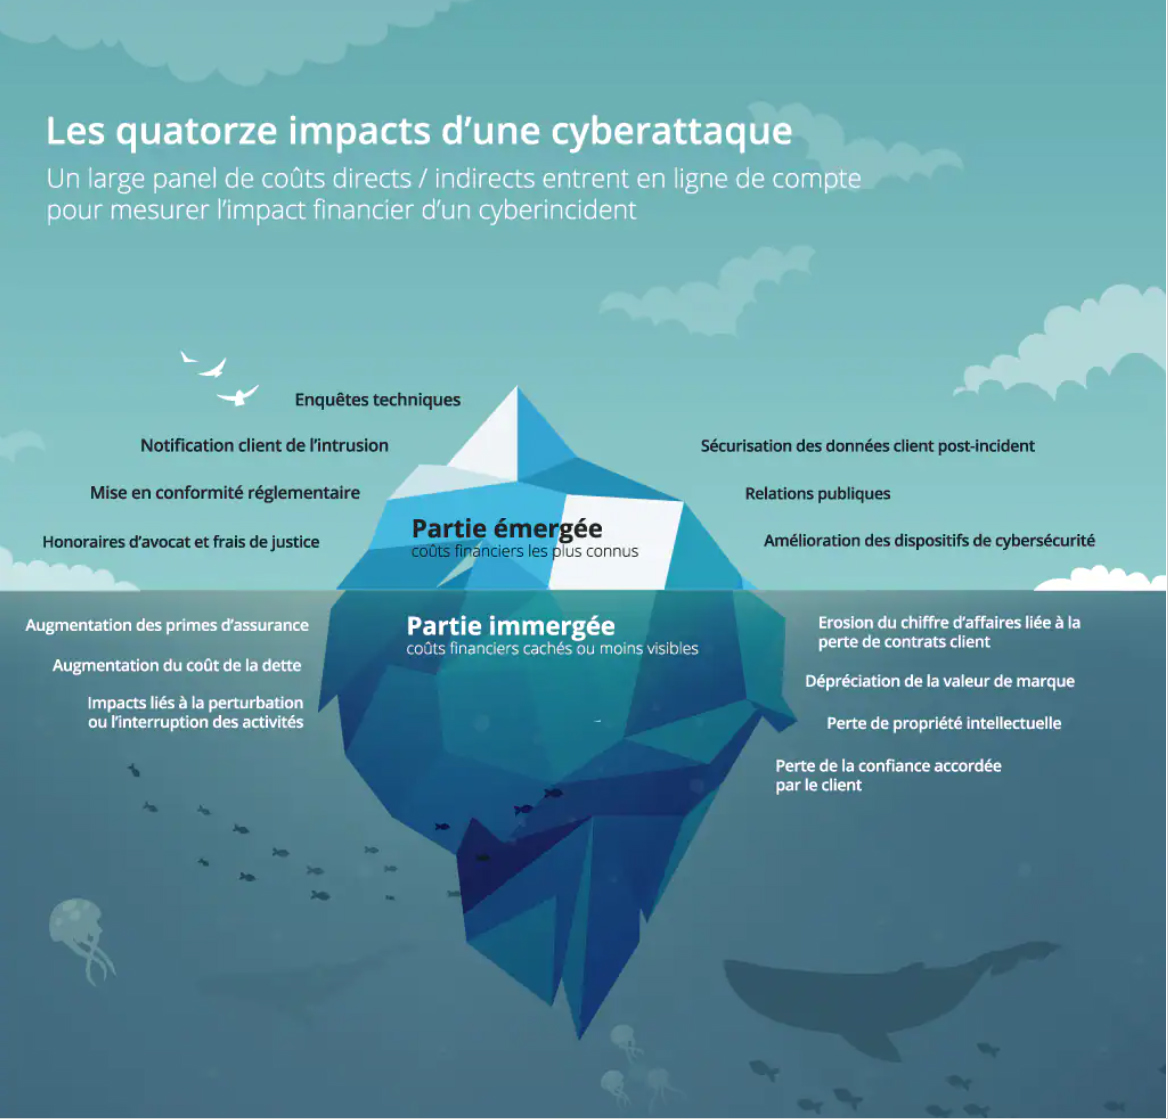 infographie impacts d'une cyberattaque